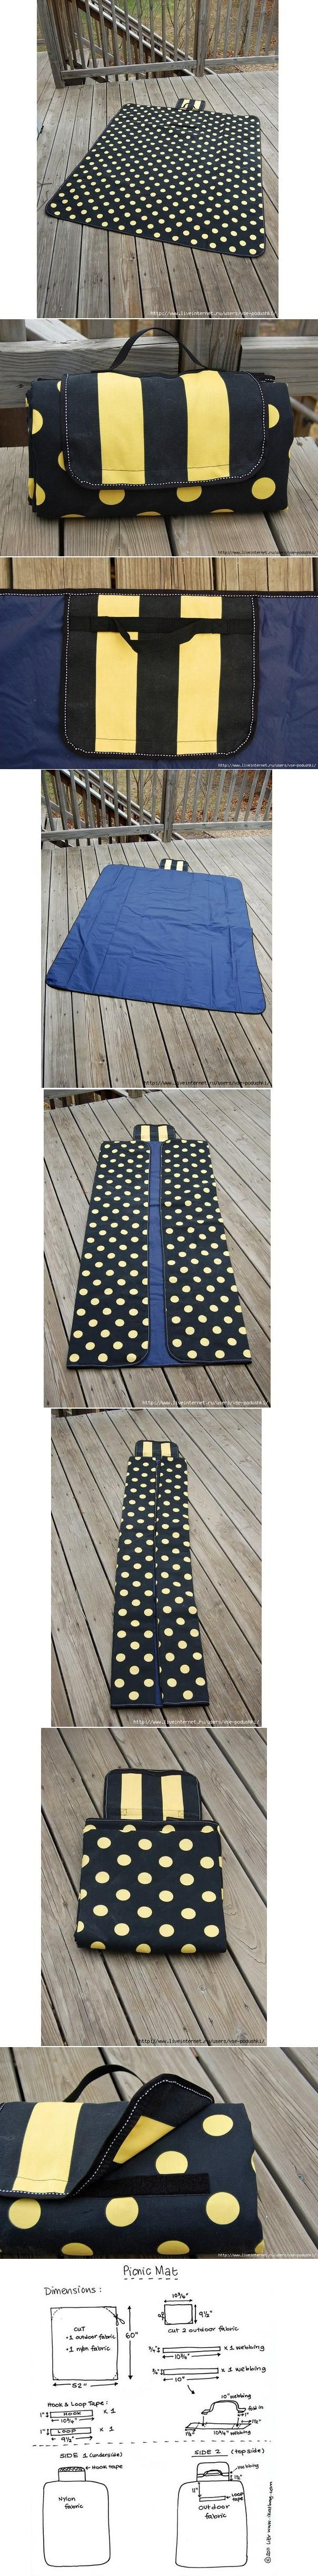 DIY Picnic Mat DIY Projects | UsefulDIY.com